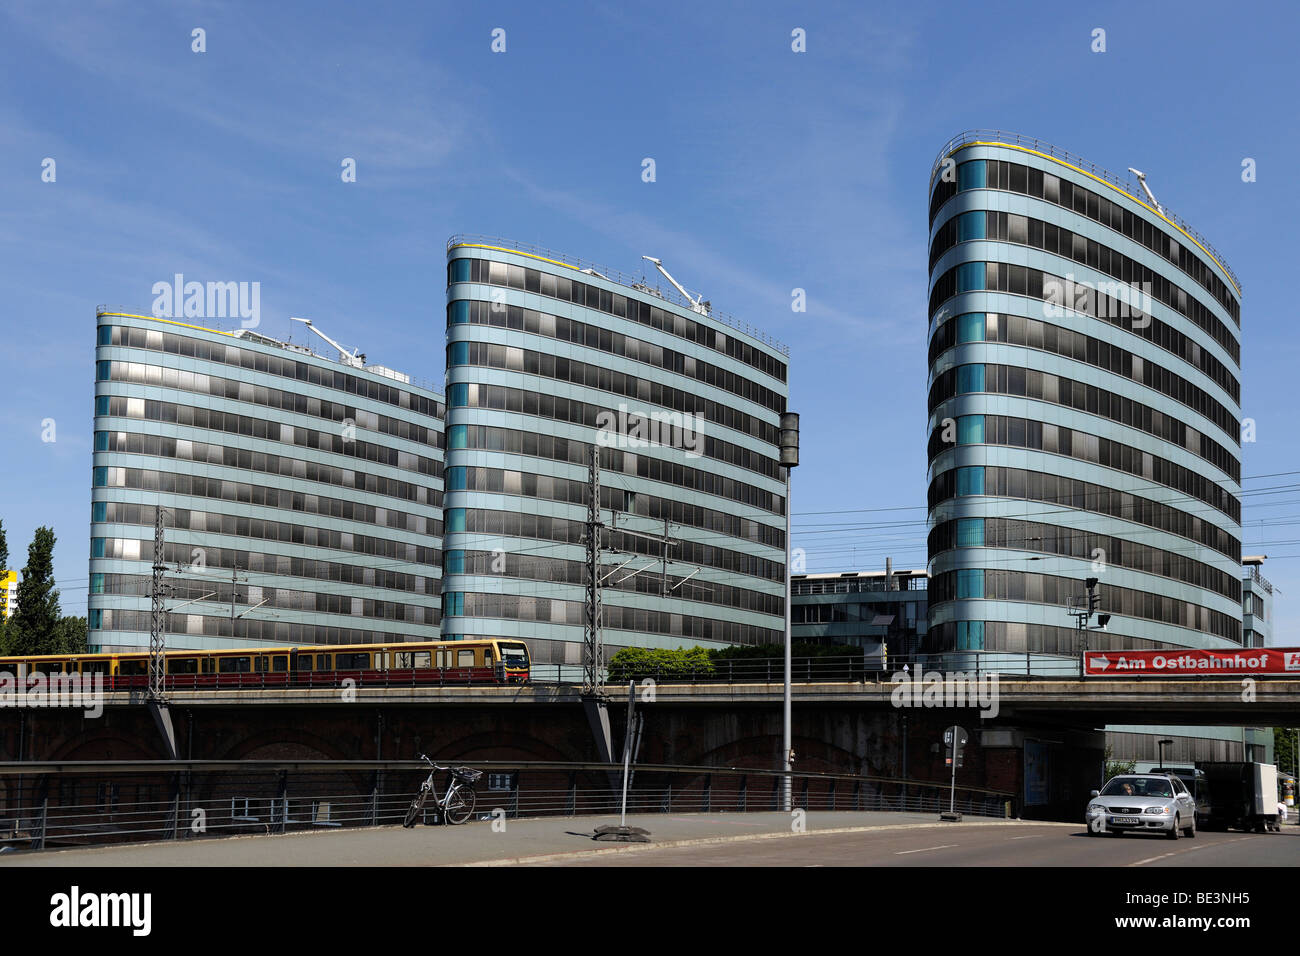 Triassic City Towers, passing S-Bahn, Berlin, Germany, Europe - Stock Image